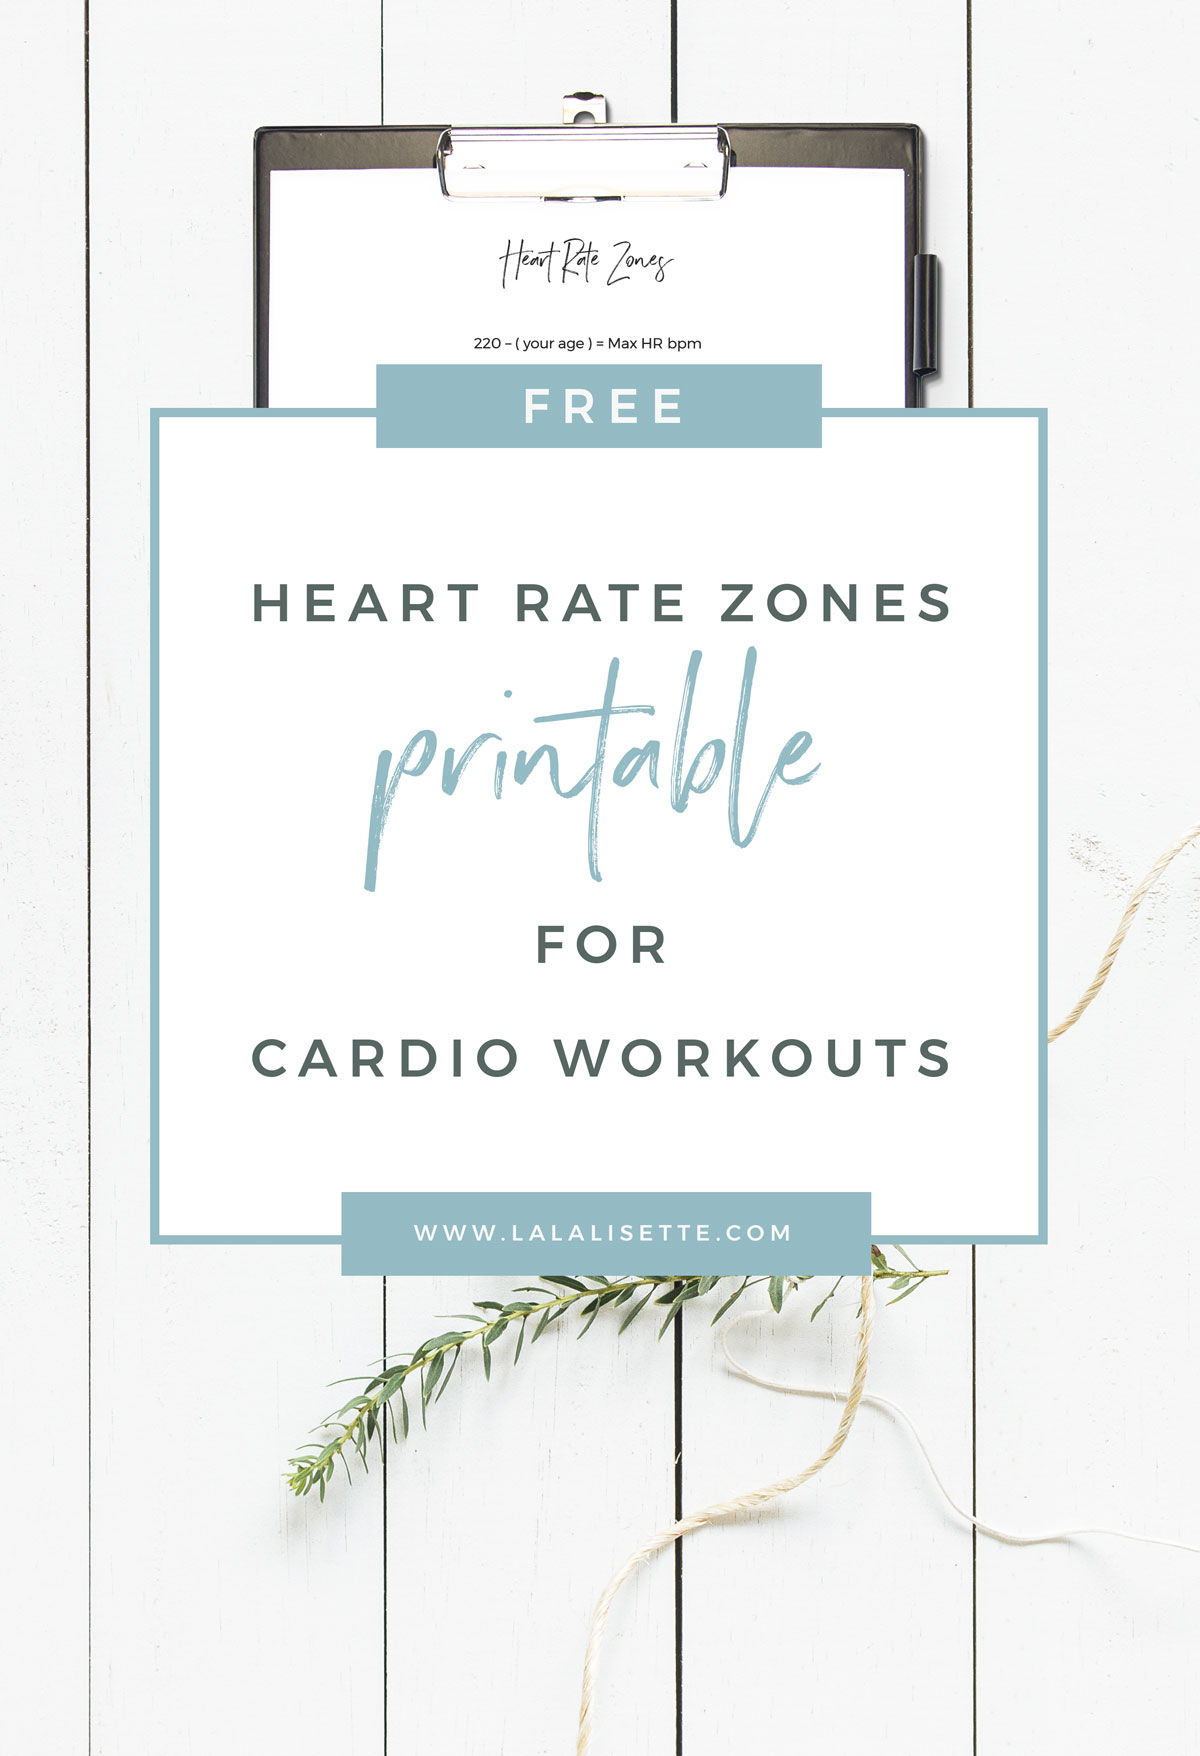 FREE Heart Rate Zones printable for cardio exercises - #fitness #printable #cardio #free - La La -Lisette